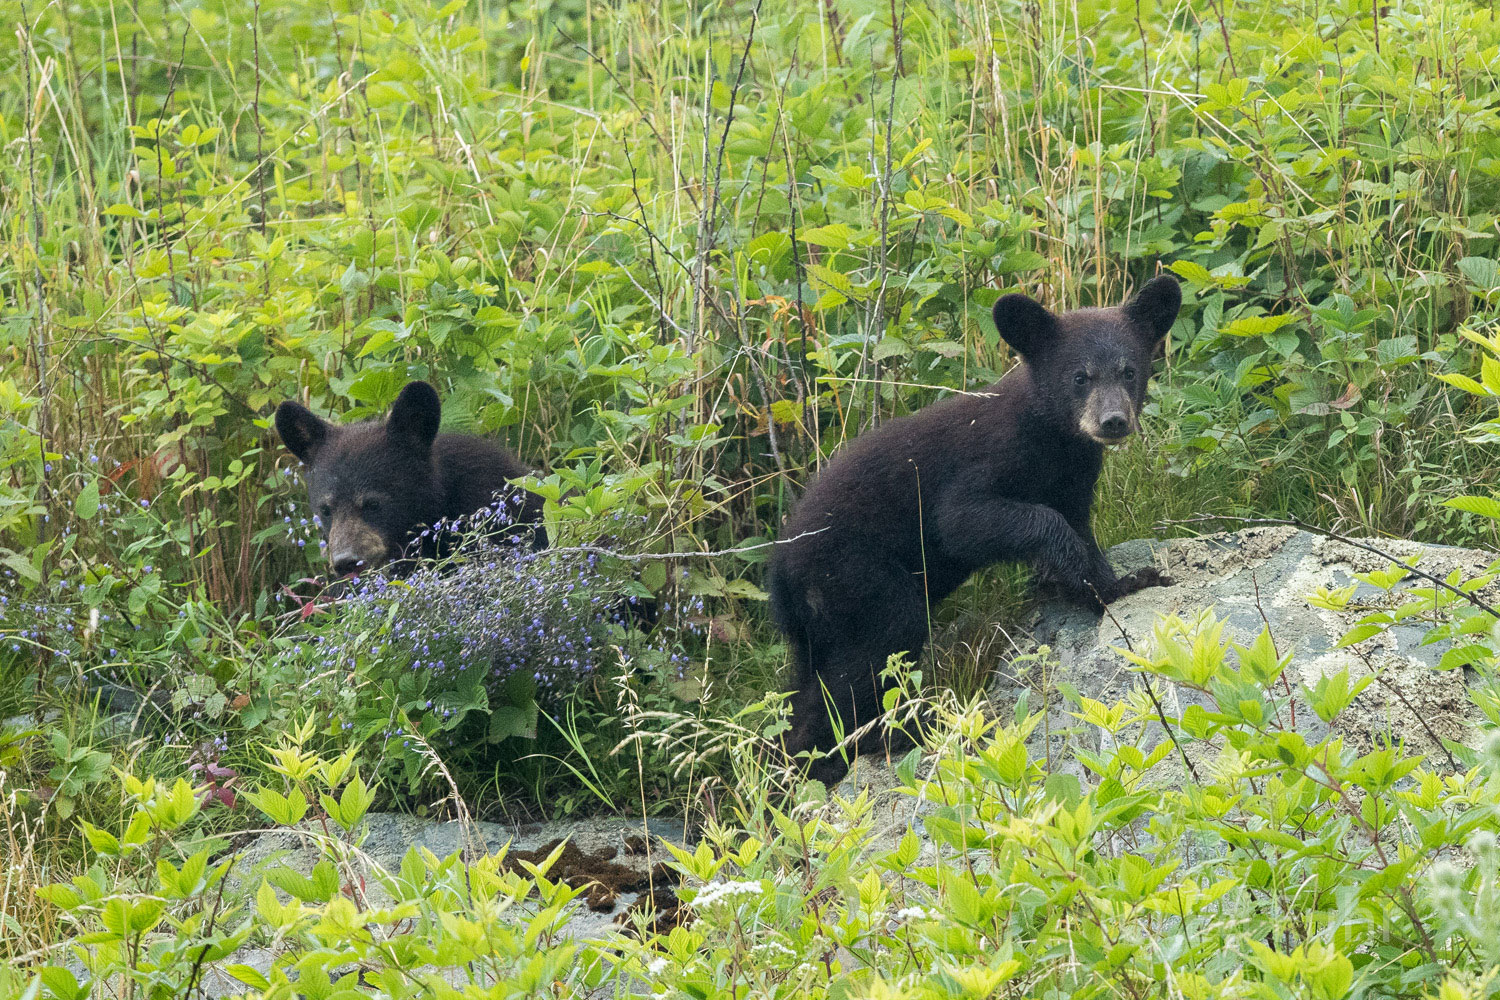 Two black bear cubs alternate between foraging and play while mom leads them from the meadow.